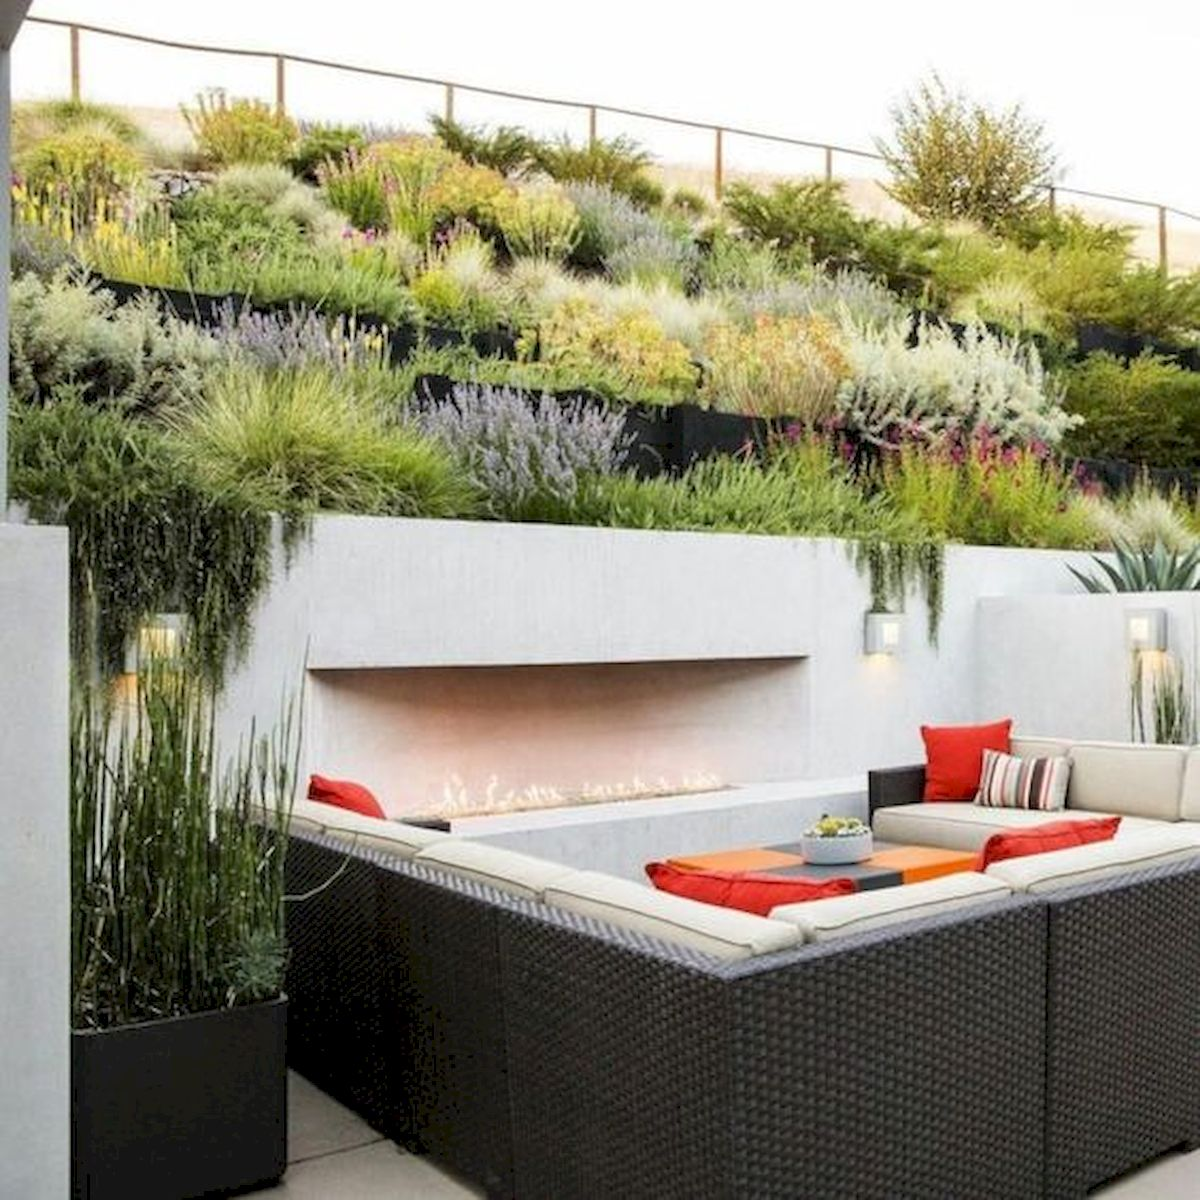 50 Awesome Modern Backyard Garden Design Ideas With Hanging Plants (12)